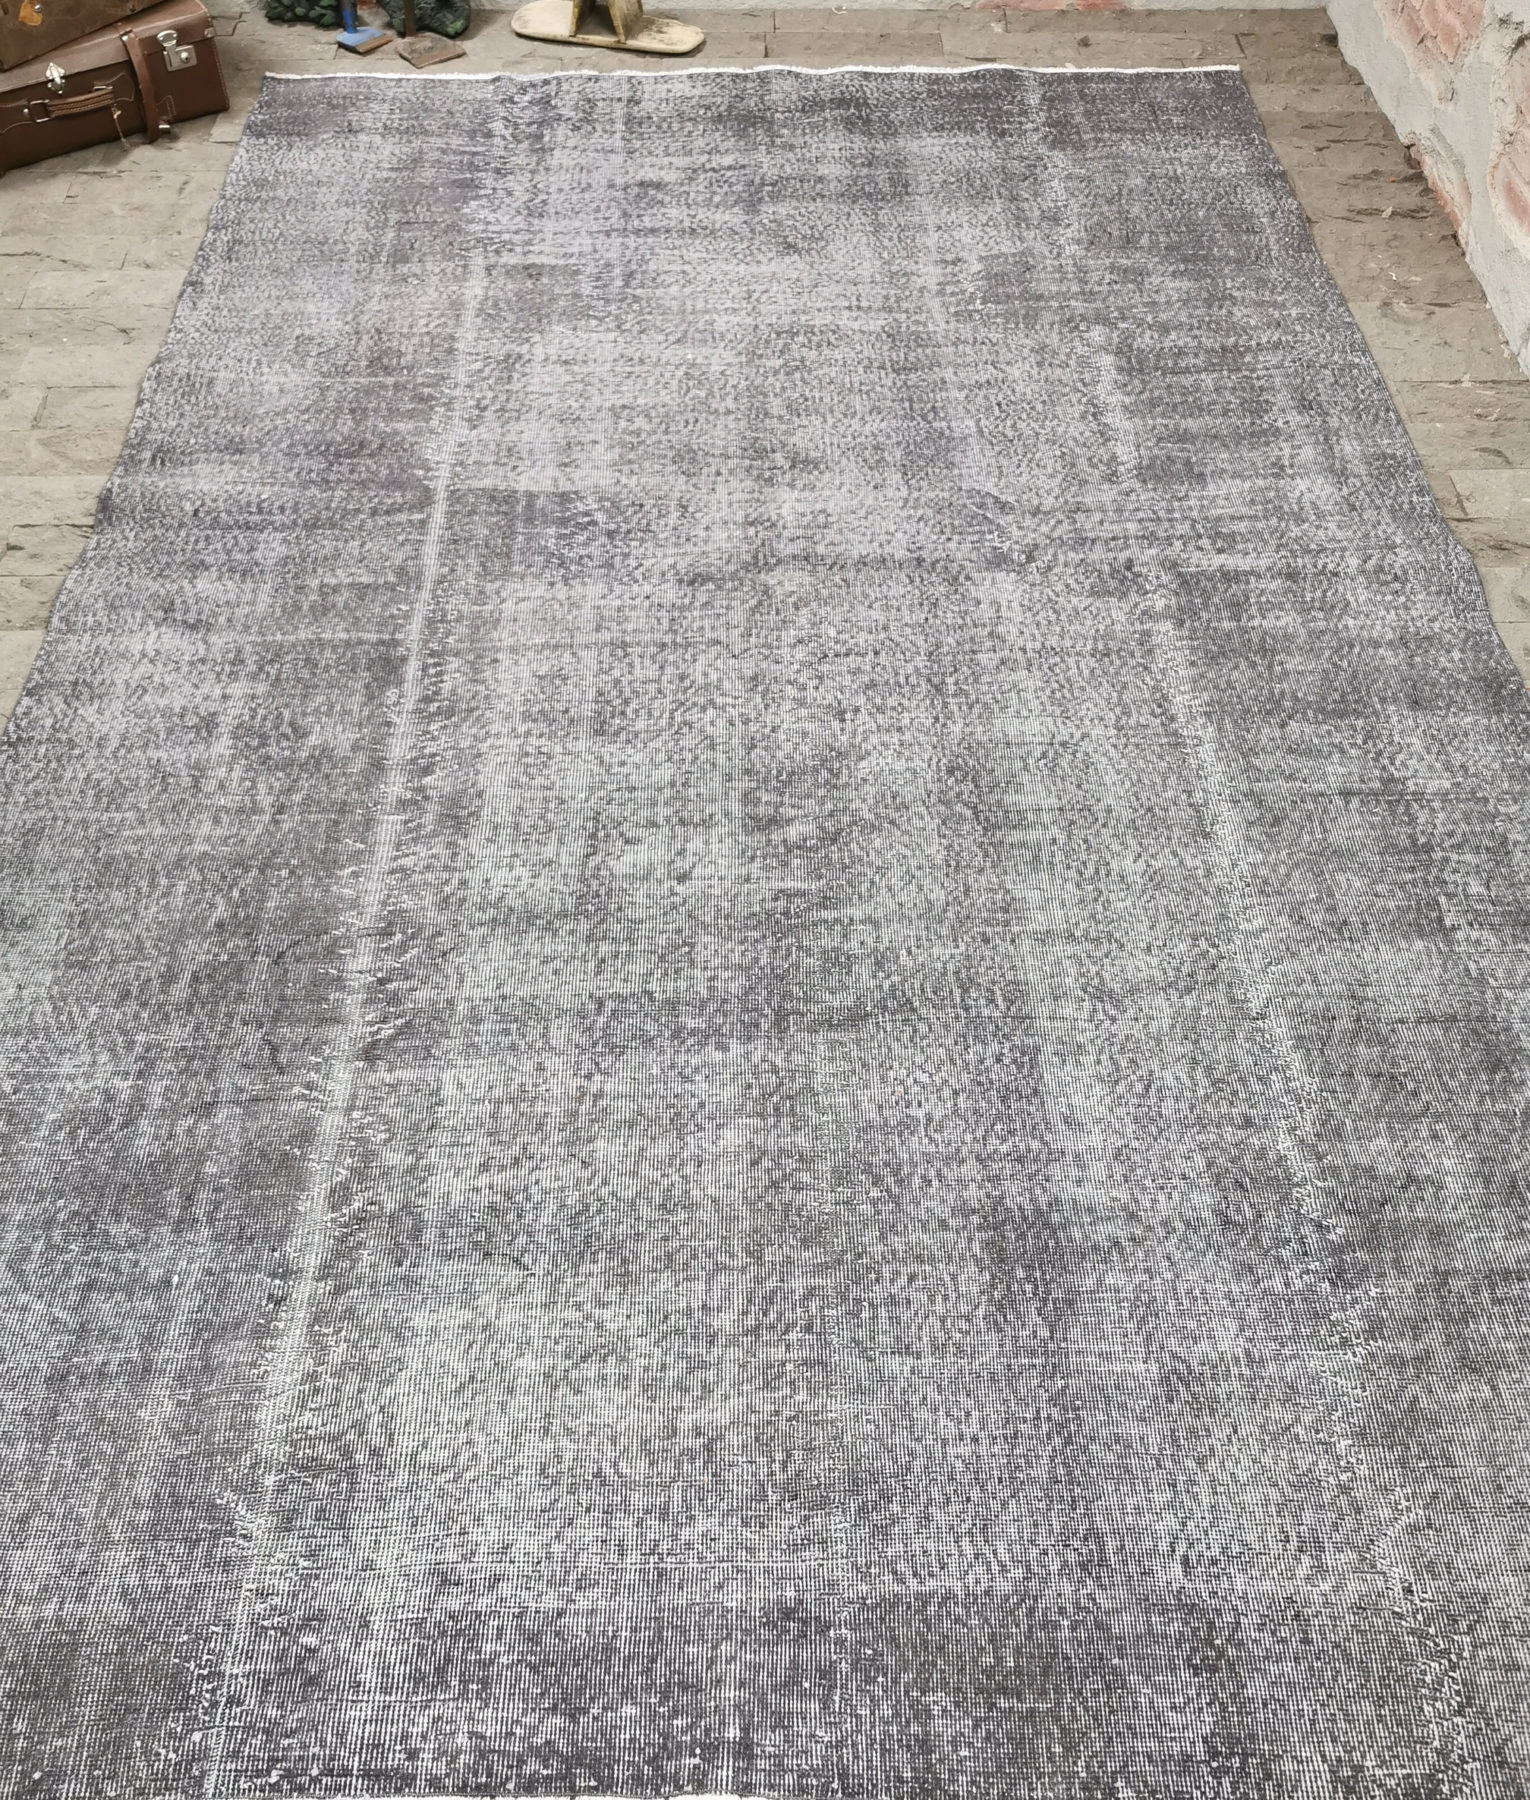 Gray Overdyed Rug 6 8x10 6ft Vintage Turkish Rug